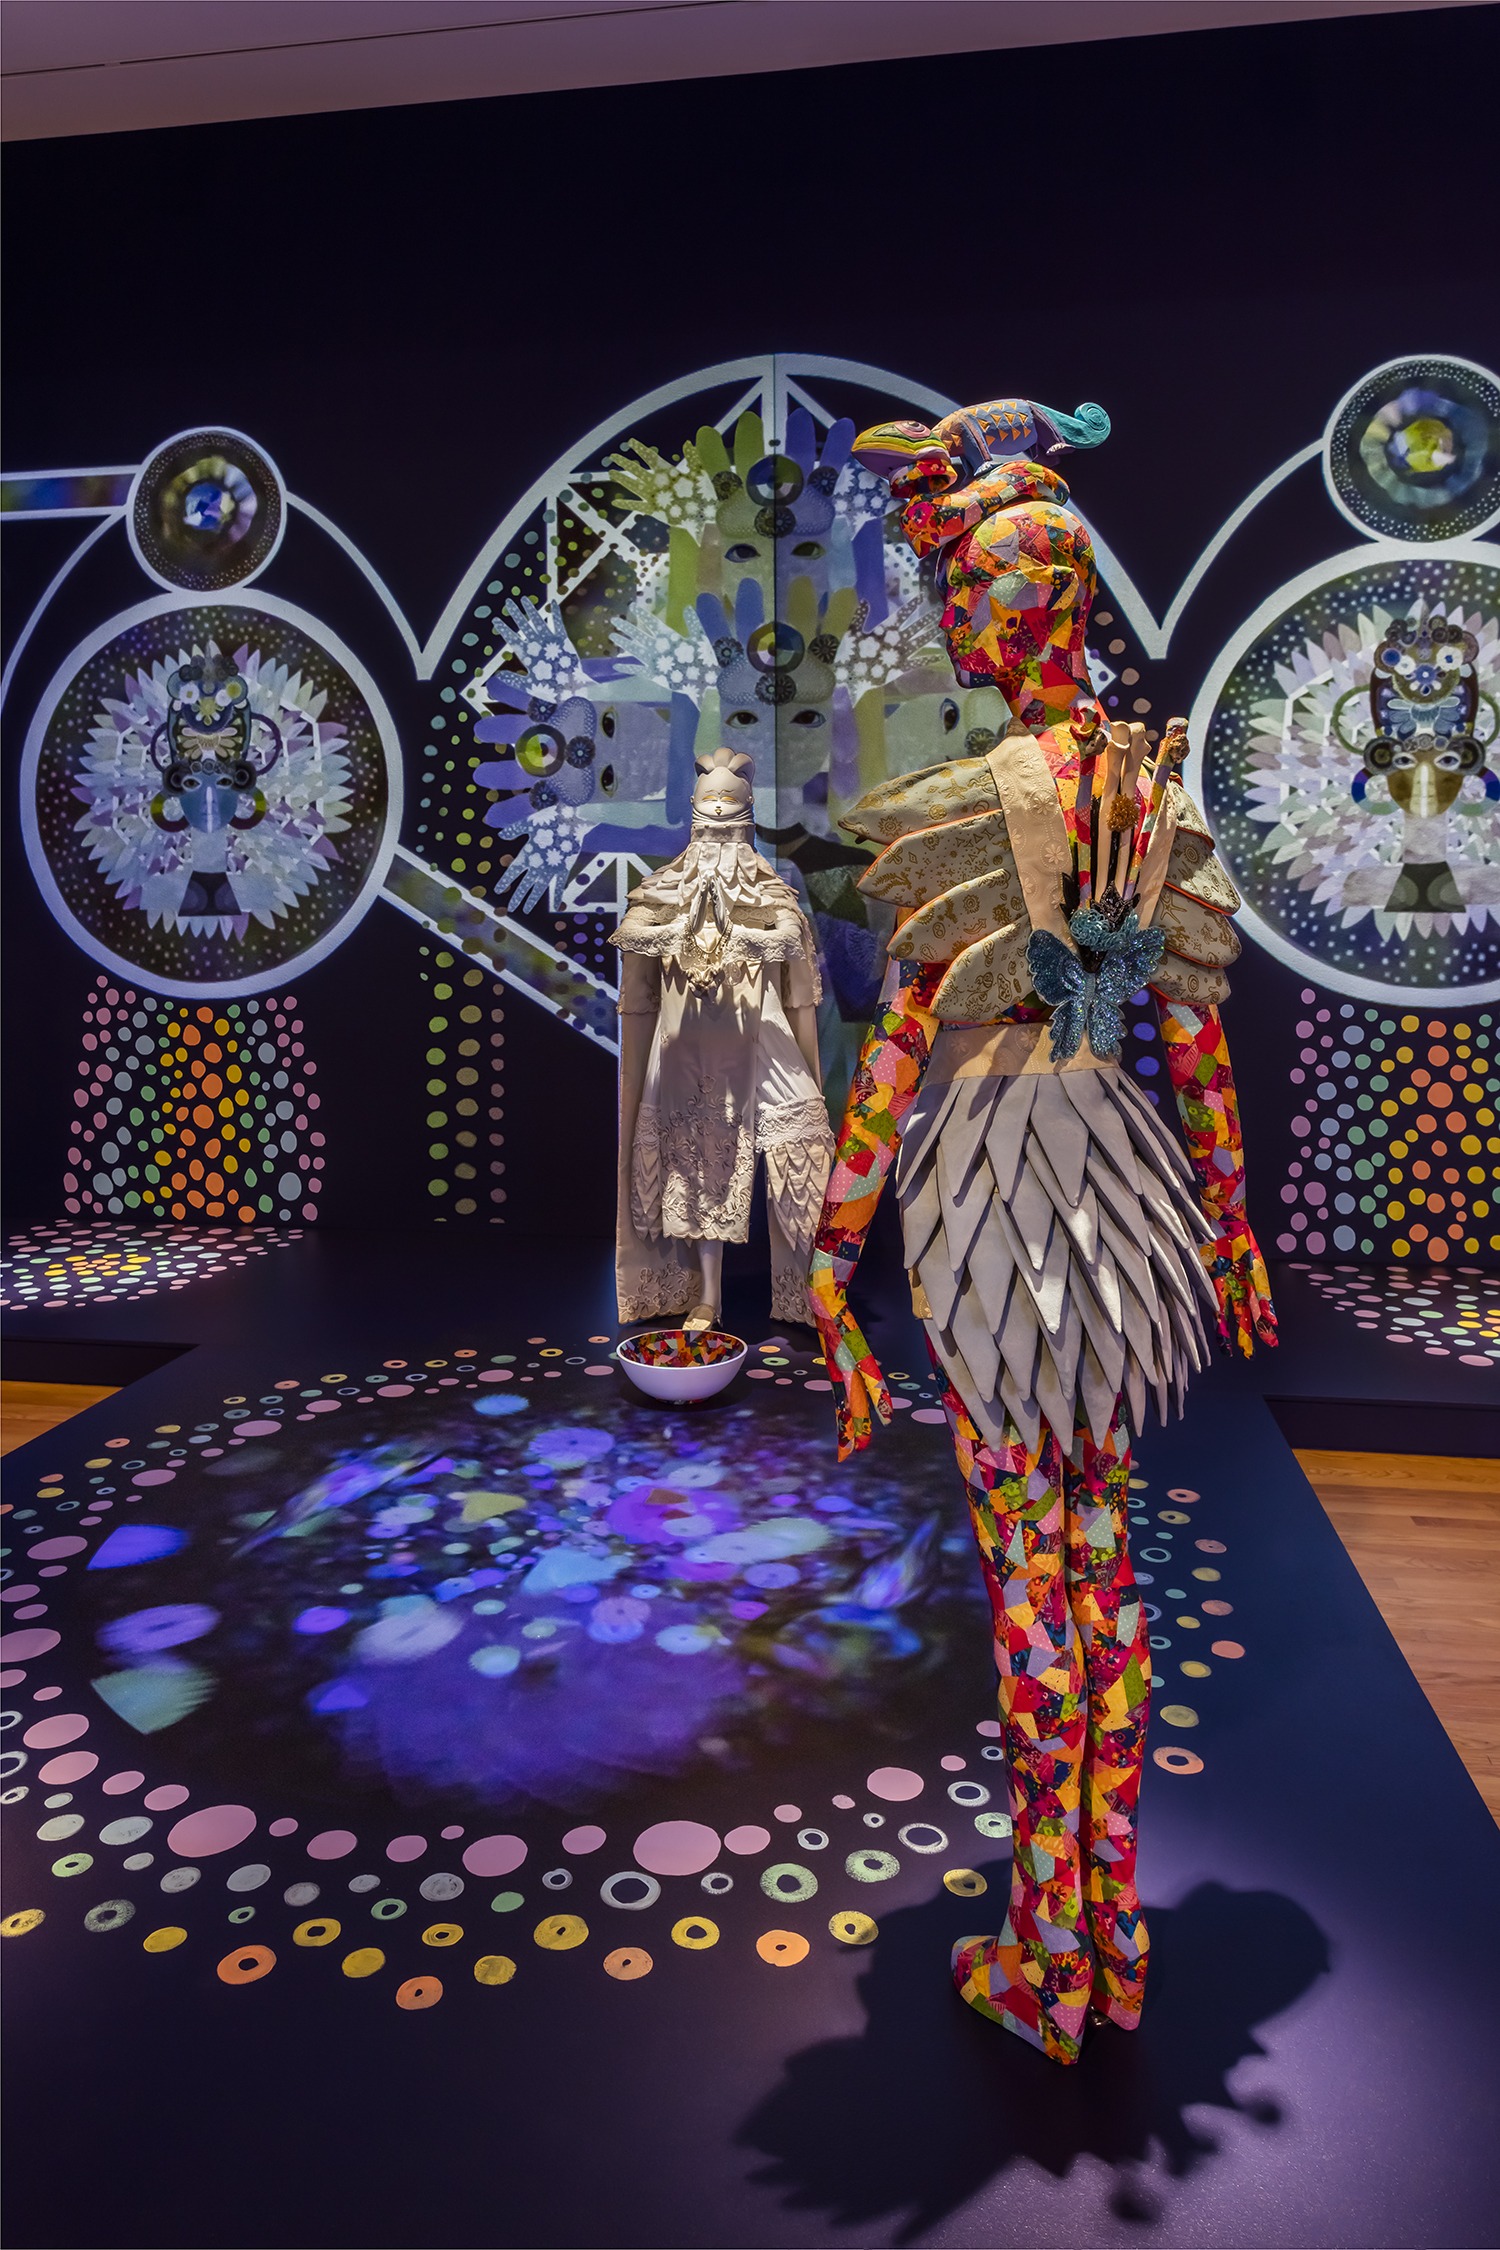 ChimaTEK Life Products Virtual Chimeric Space  Mixed Media with HD Digital Video Projections 42' x 12' x 12' Seattle Art Museum: Disguise: Masks and Global African Art Photo Credit: Nathanial Wilson 2015